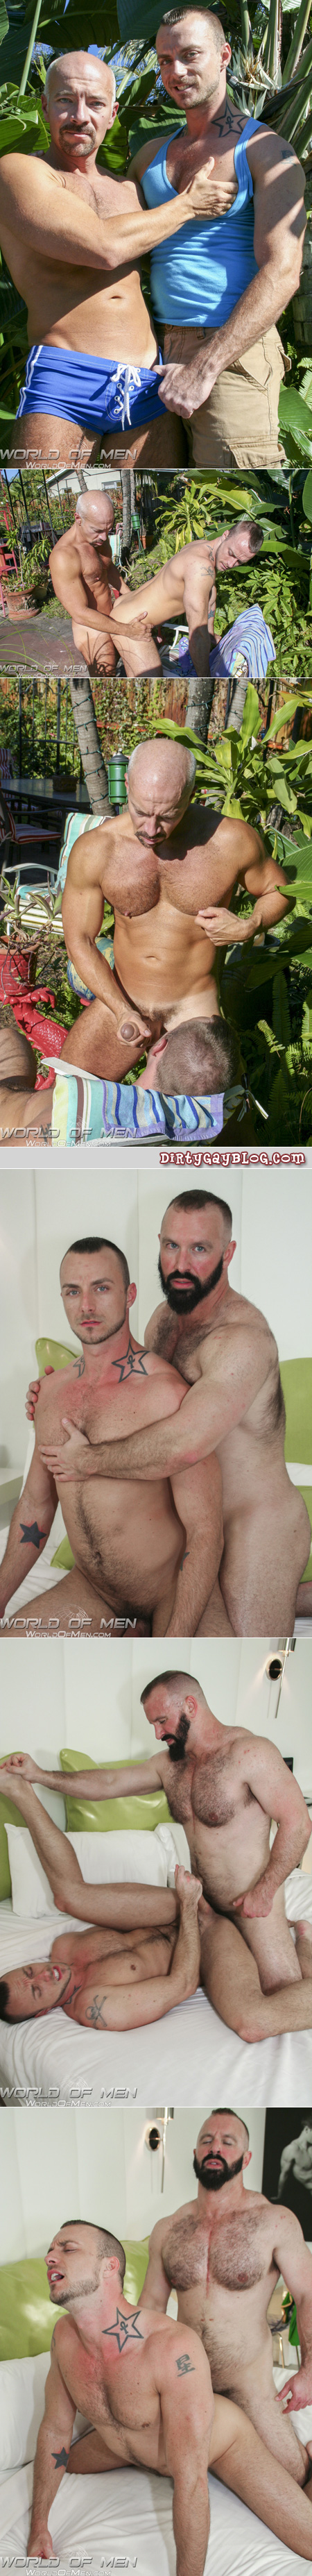 Male slut is fucked in the ass by a muscular white-haired Daddy in a squarecut swimsuit and a butch, hairy bear.